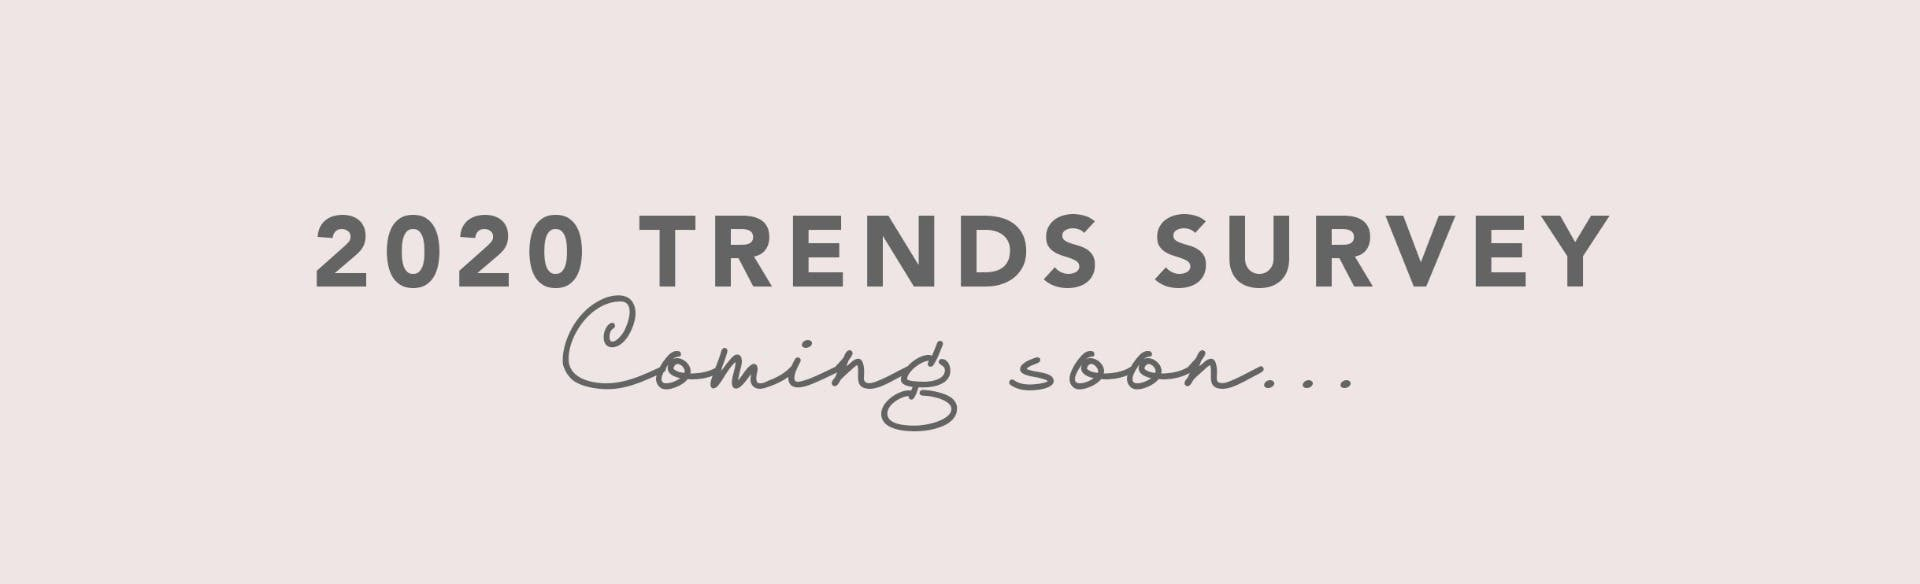 2020 Trends Survey Coming Soon